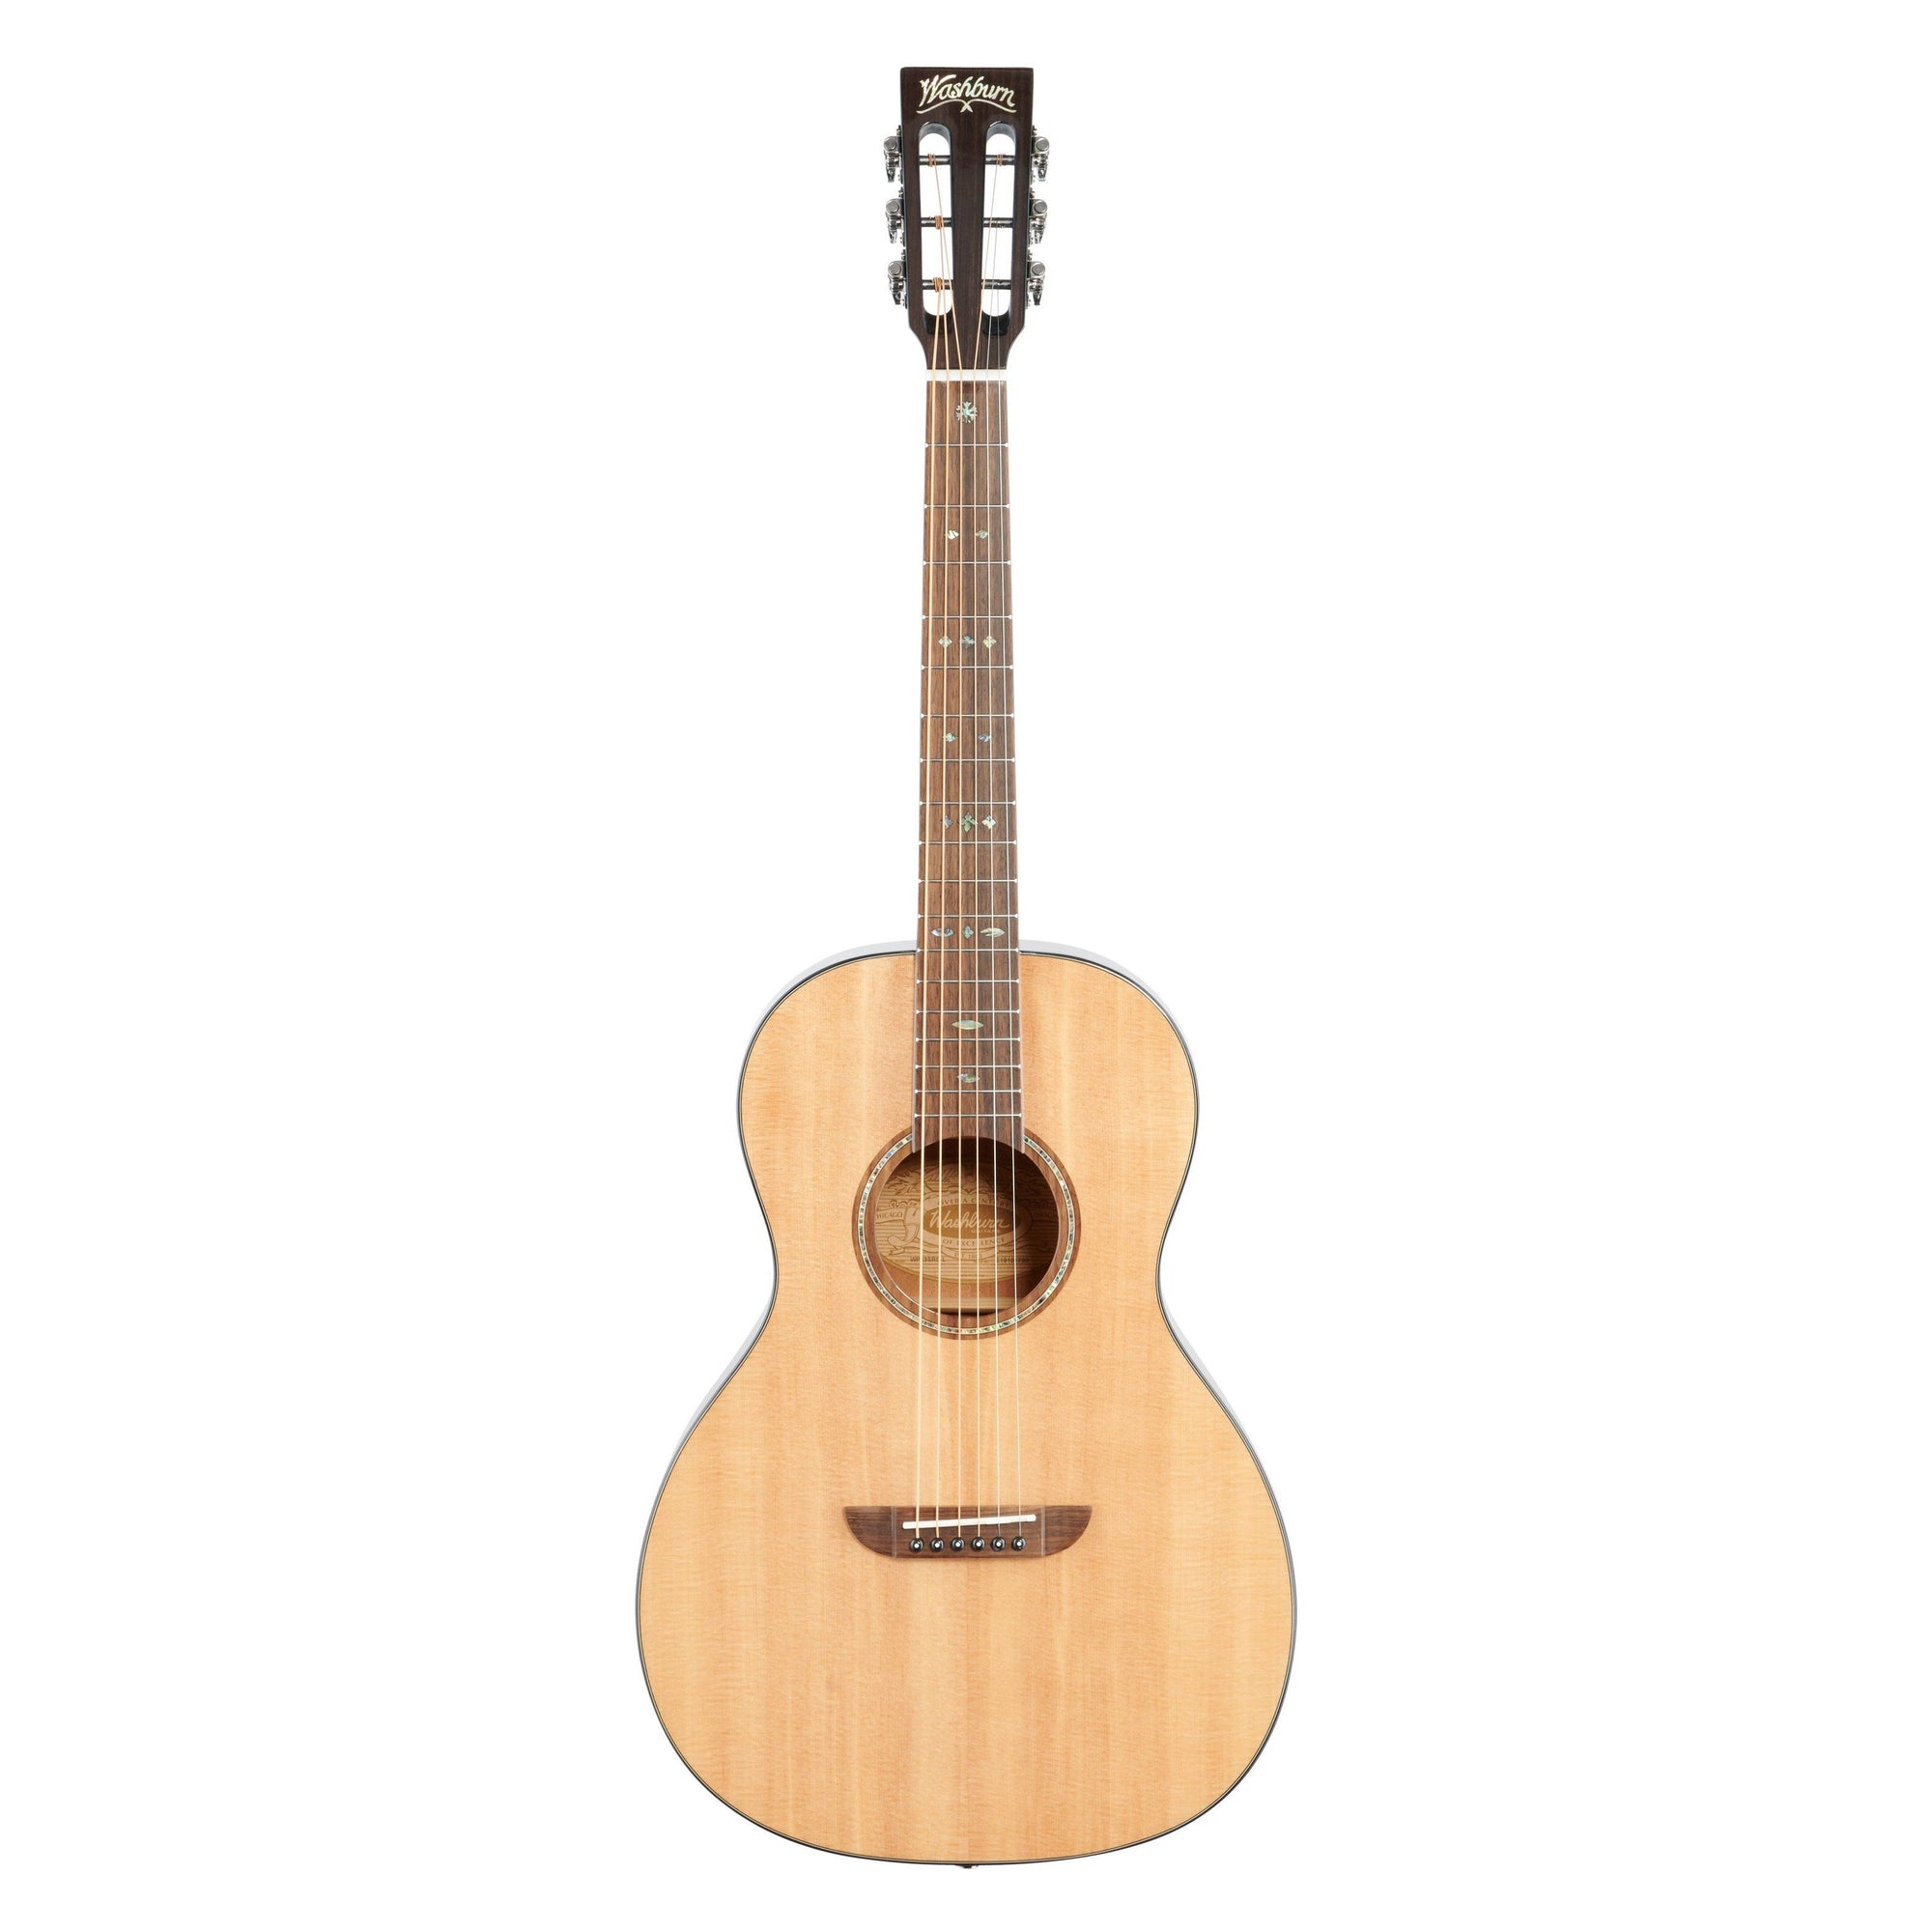 Washburn P33S Royal Sapphire Acoustic Guitar, Natural